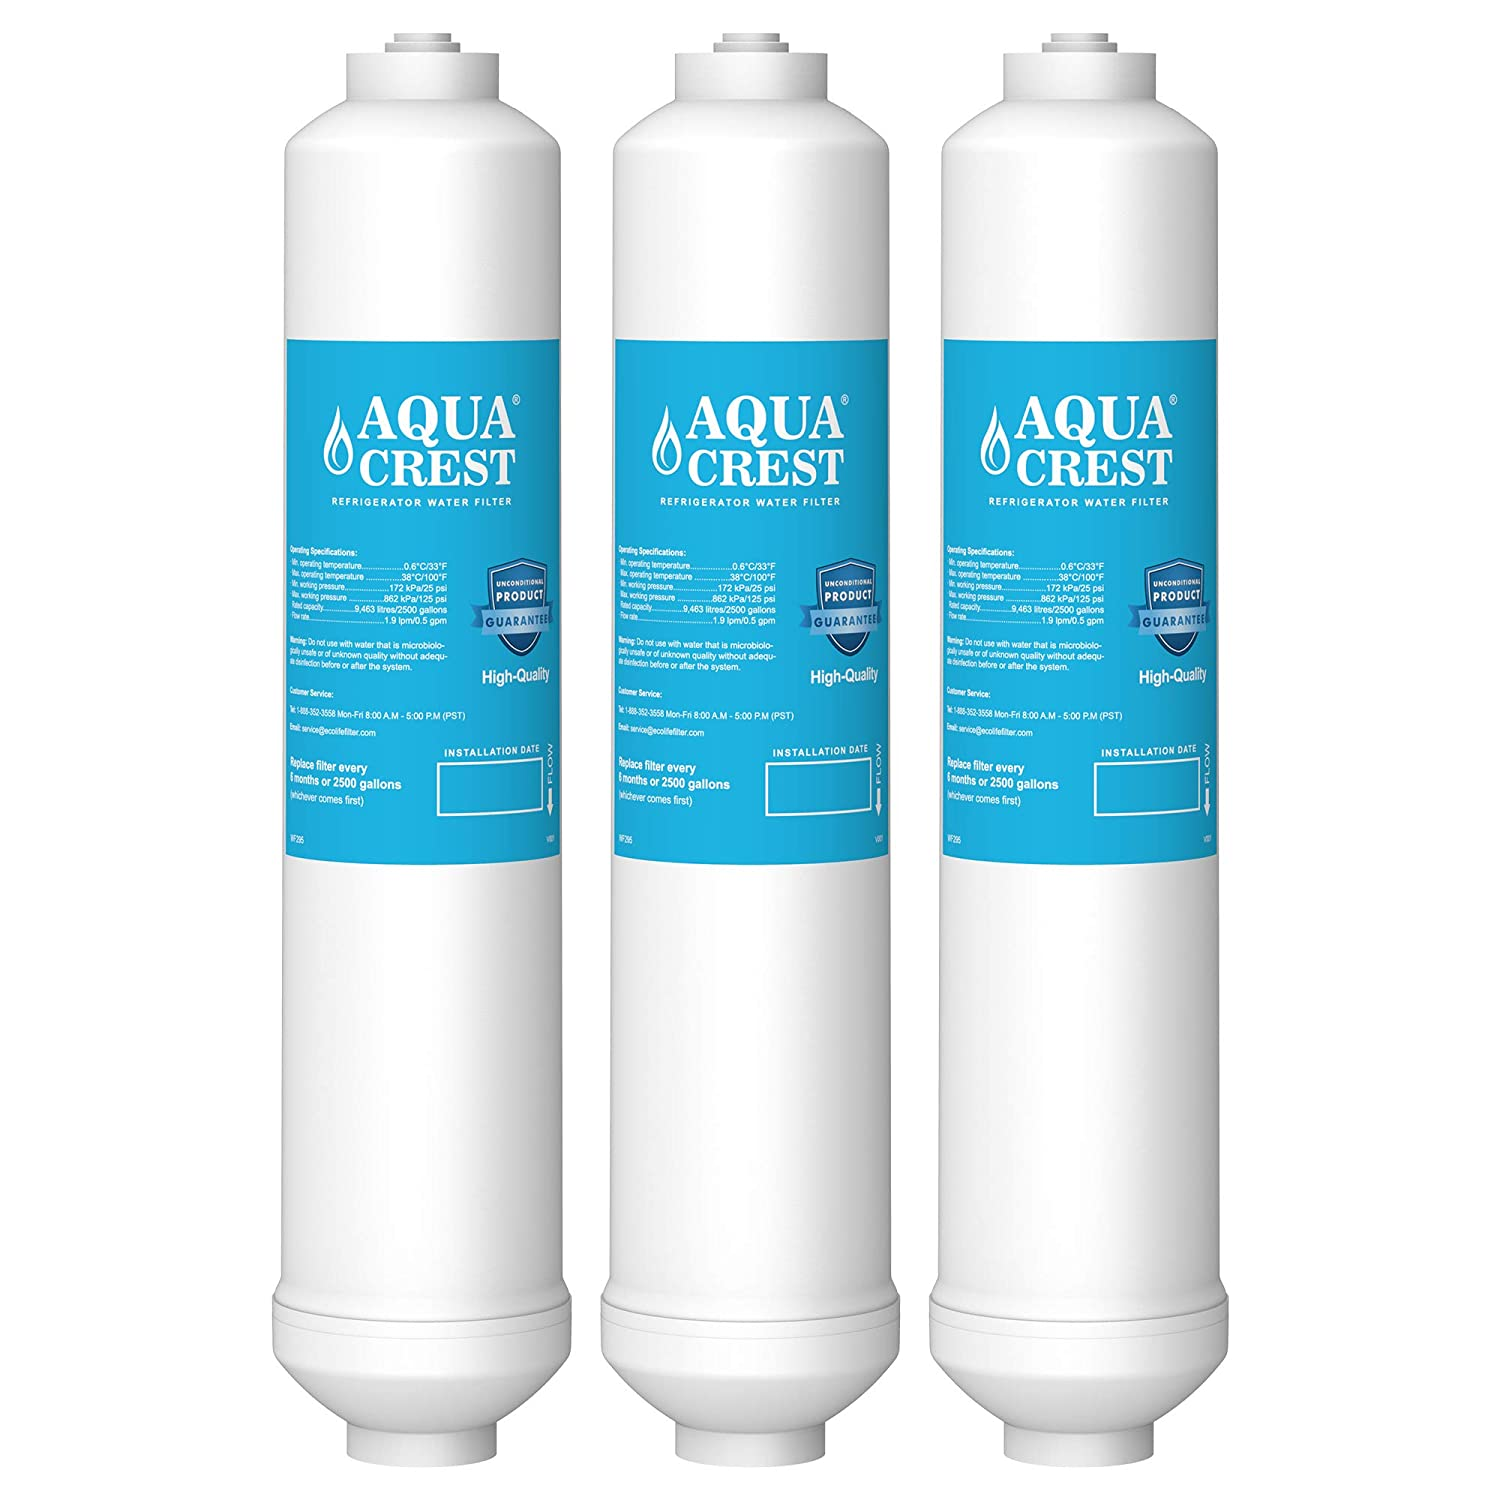 AQUACREST Replacement GXRTDR Exterior Refrigerator Icemaker Water Filter, Compatible with GE GXRTDR, Samsung DA29-10105J, Whirlpool WHKF-IMTO (Pack of 3)